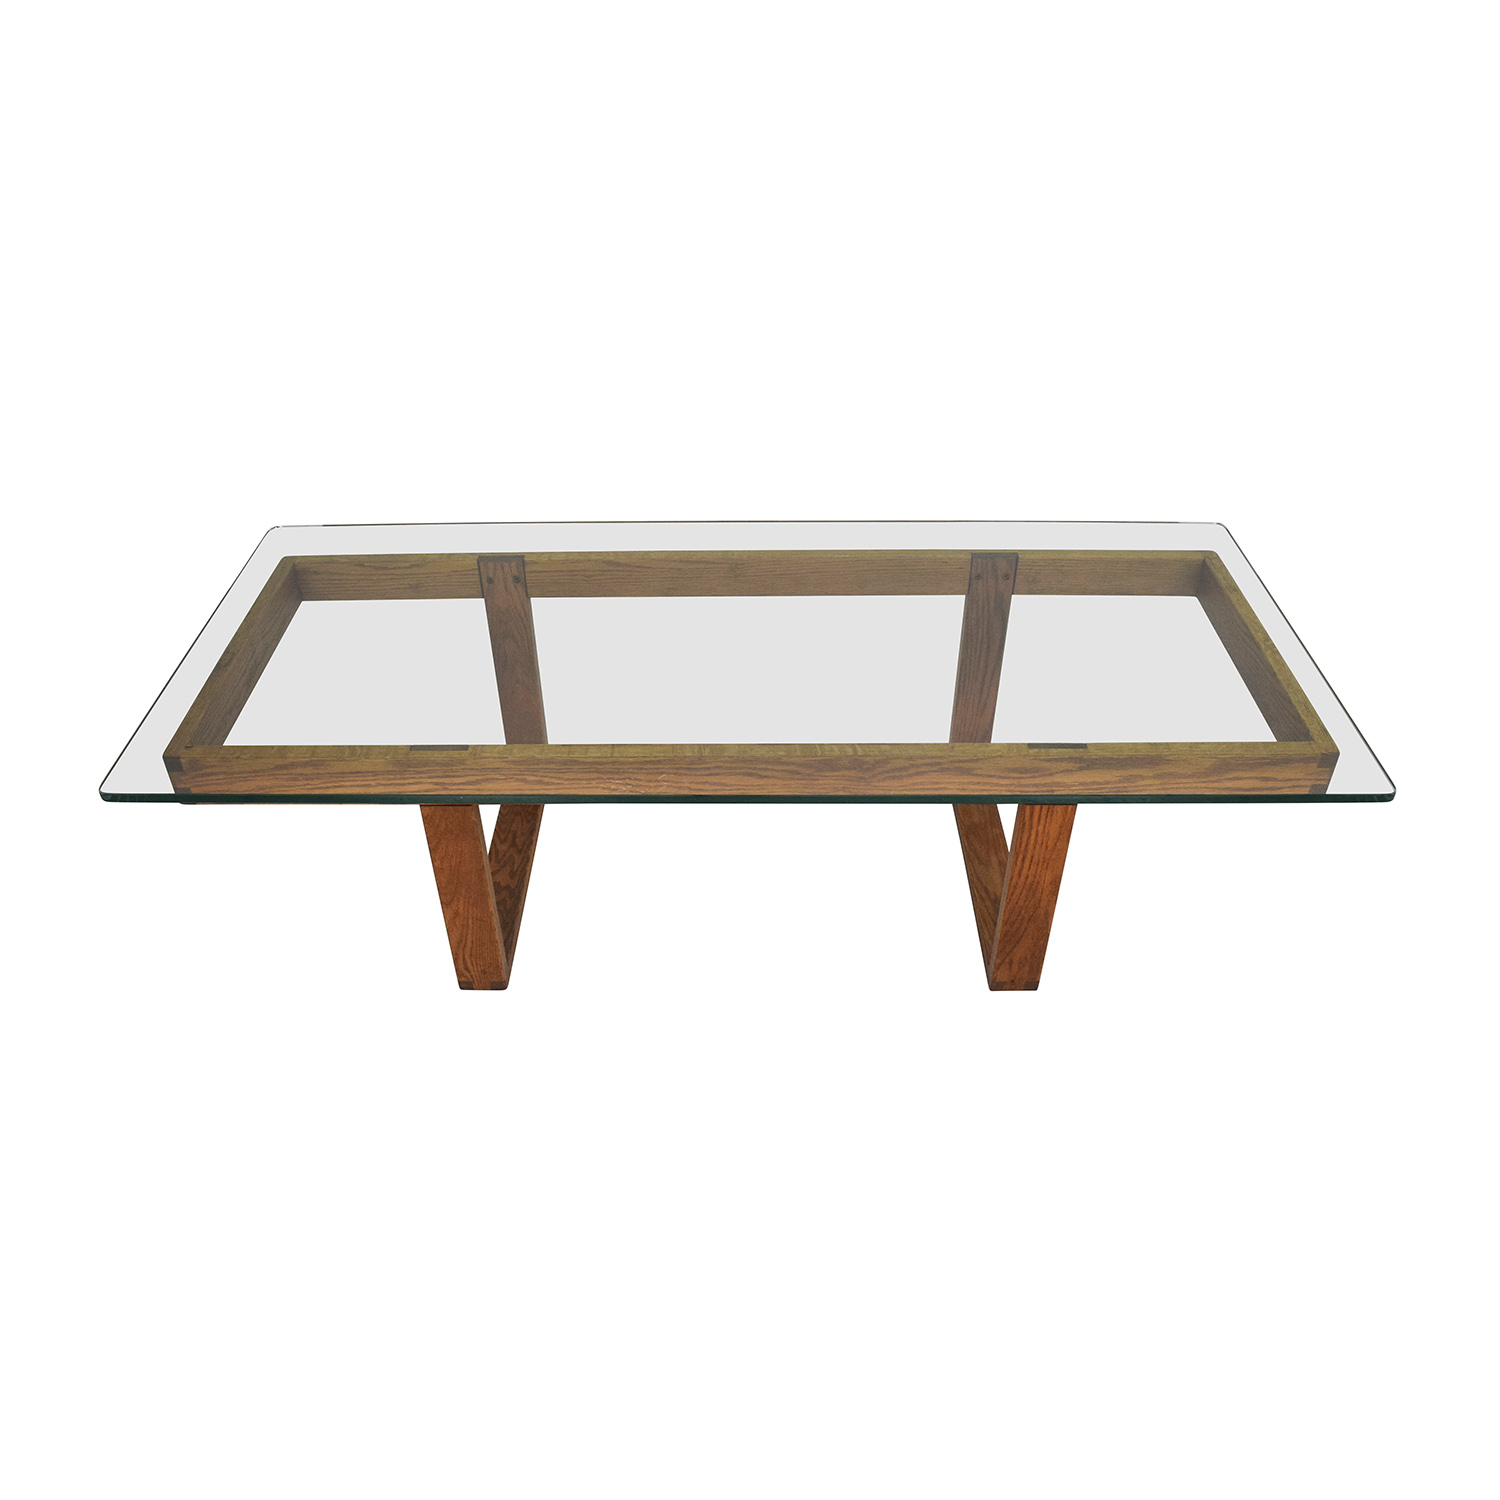 59% OFF Black Rectangular Coffee Table Tables